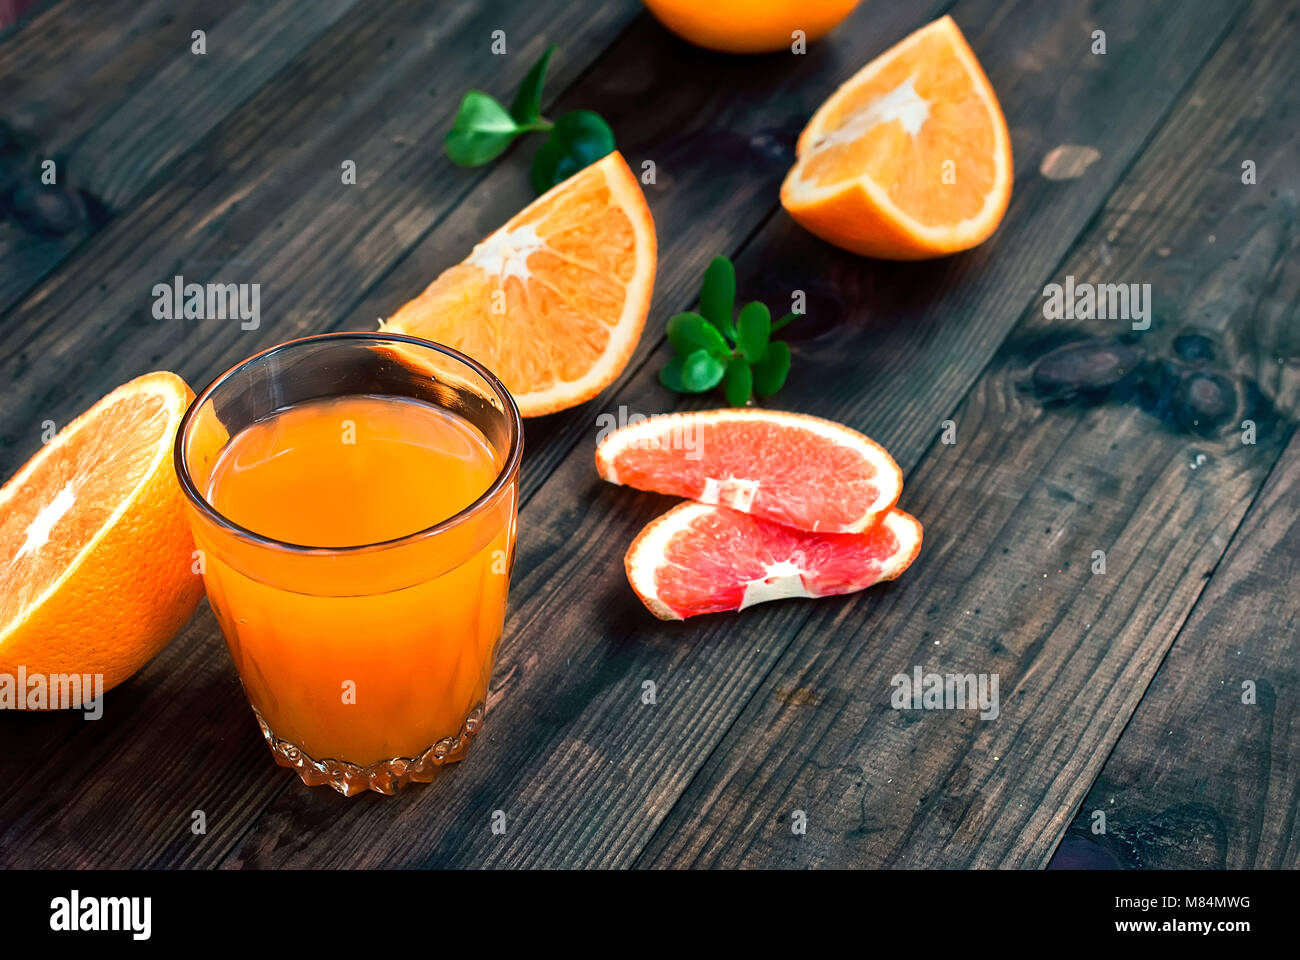 glass of fresh orange juice, whole orange and orange slices group on a dark wooden table - Stock Image